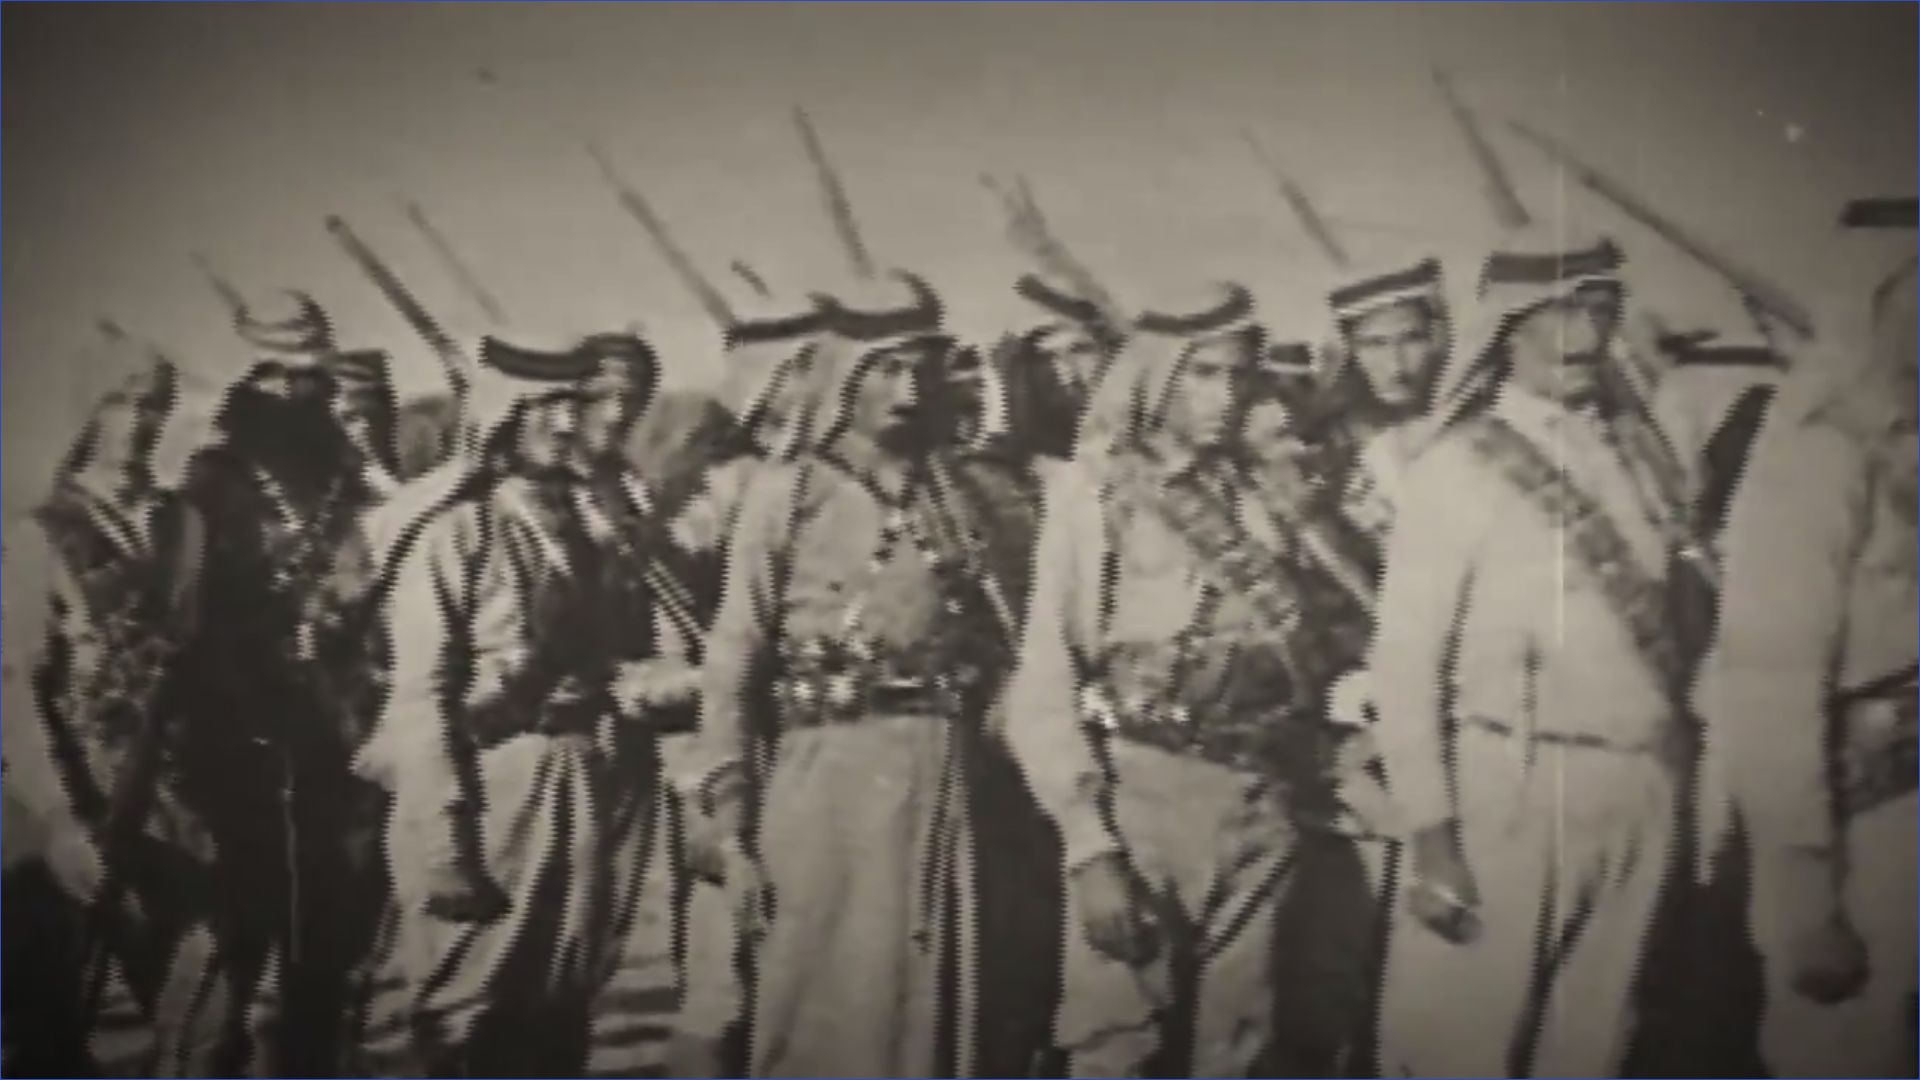 The film includes details of an Israeli battle, during which the Saudi army stormed a trench and fought Israeli forces. (Screenshot)